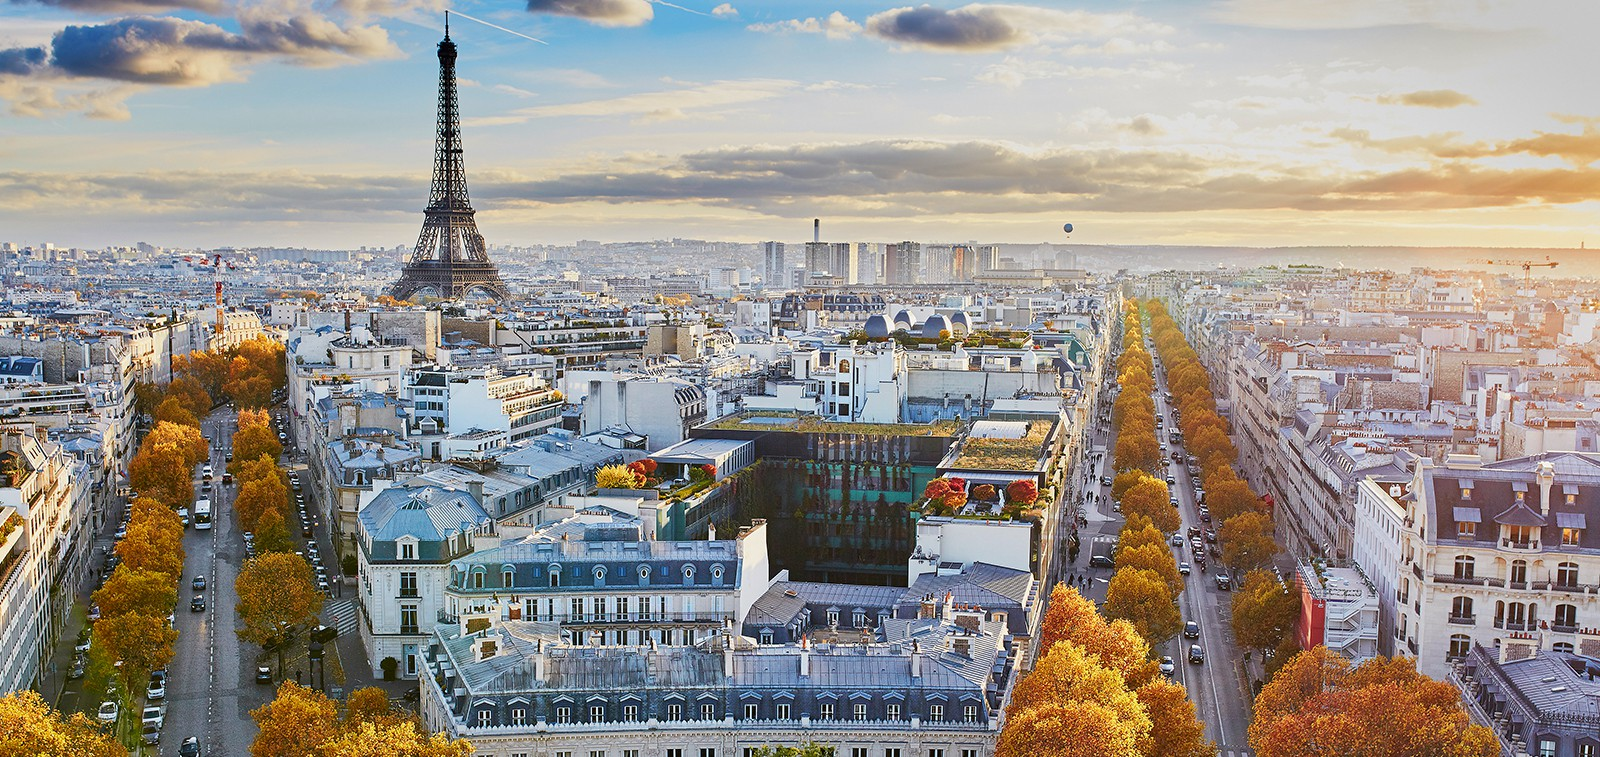 Cairo Paris flights With Travco Holidays